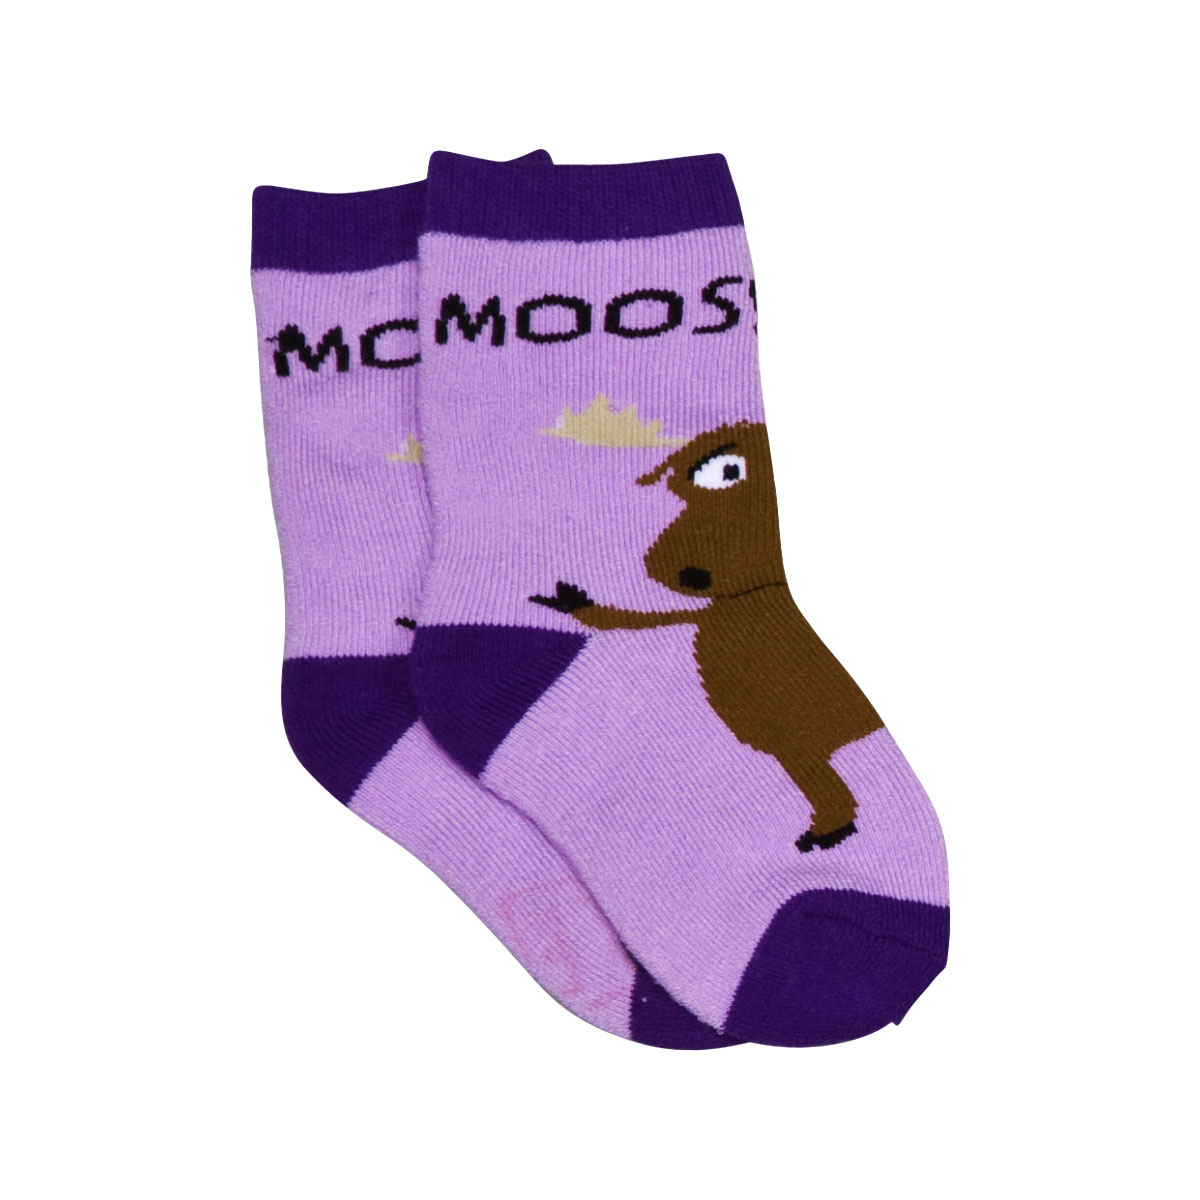 Moose Hug Purple Infant Socks 12-24